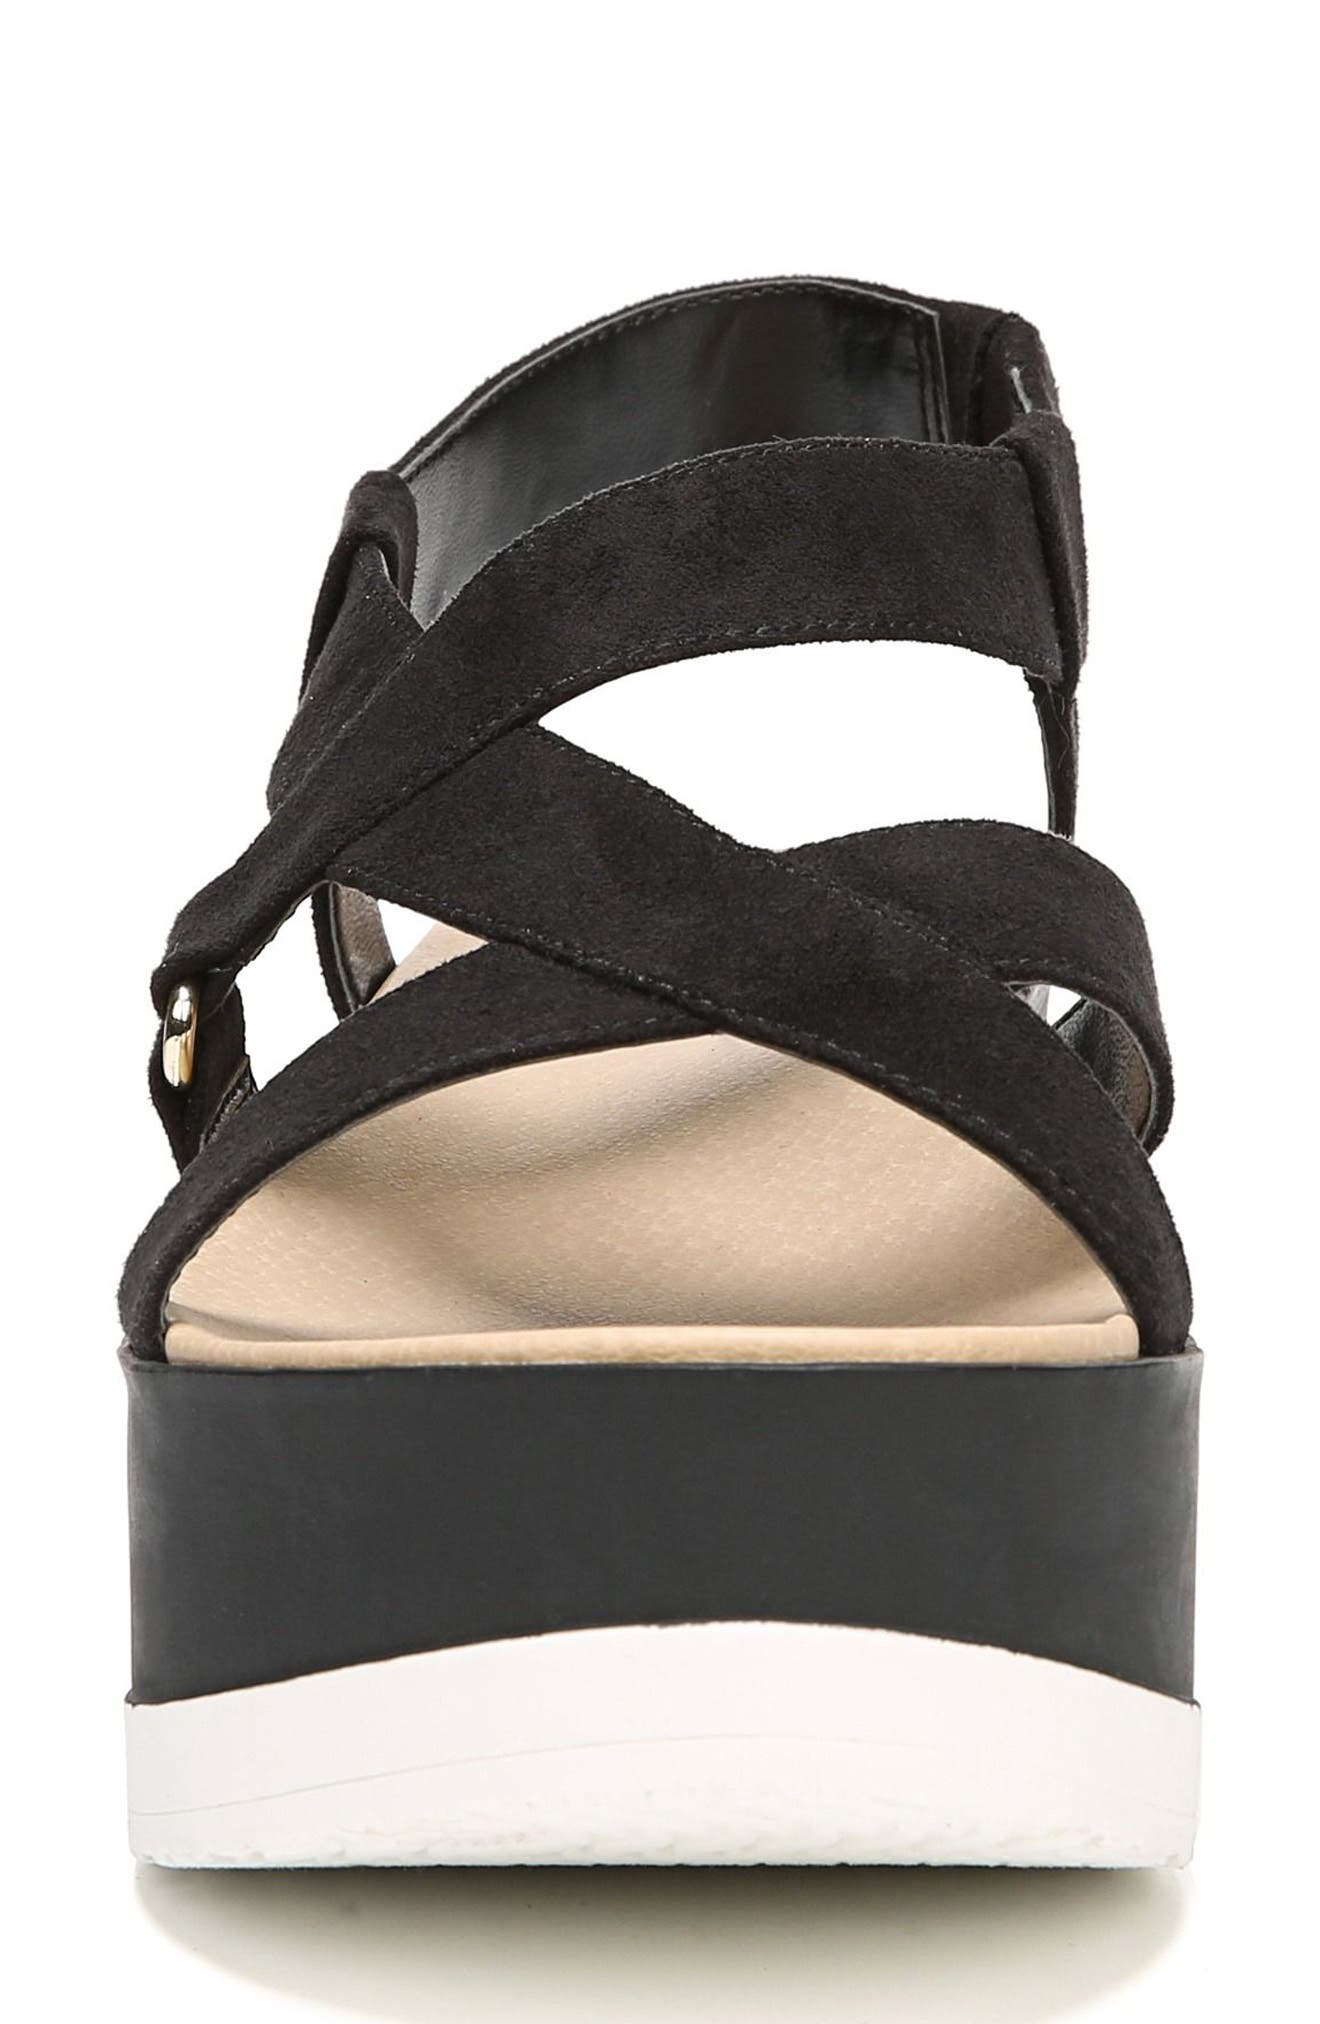 Companion Platform Sandal,                             Alternate thumbnail 4, color,                             BLACK FABRIC